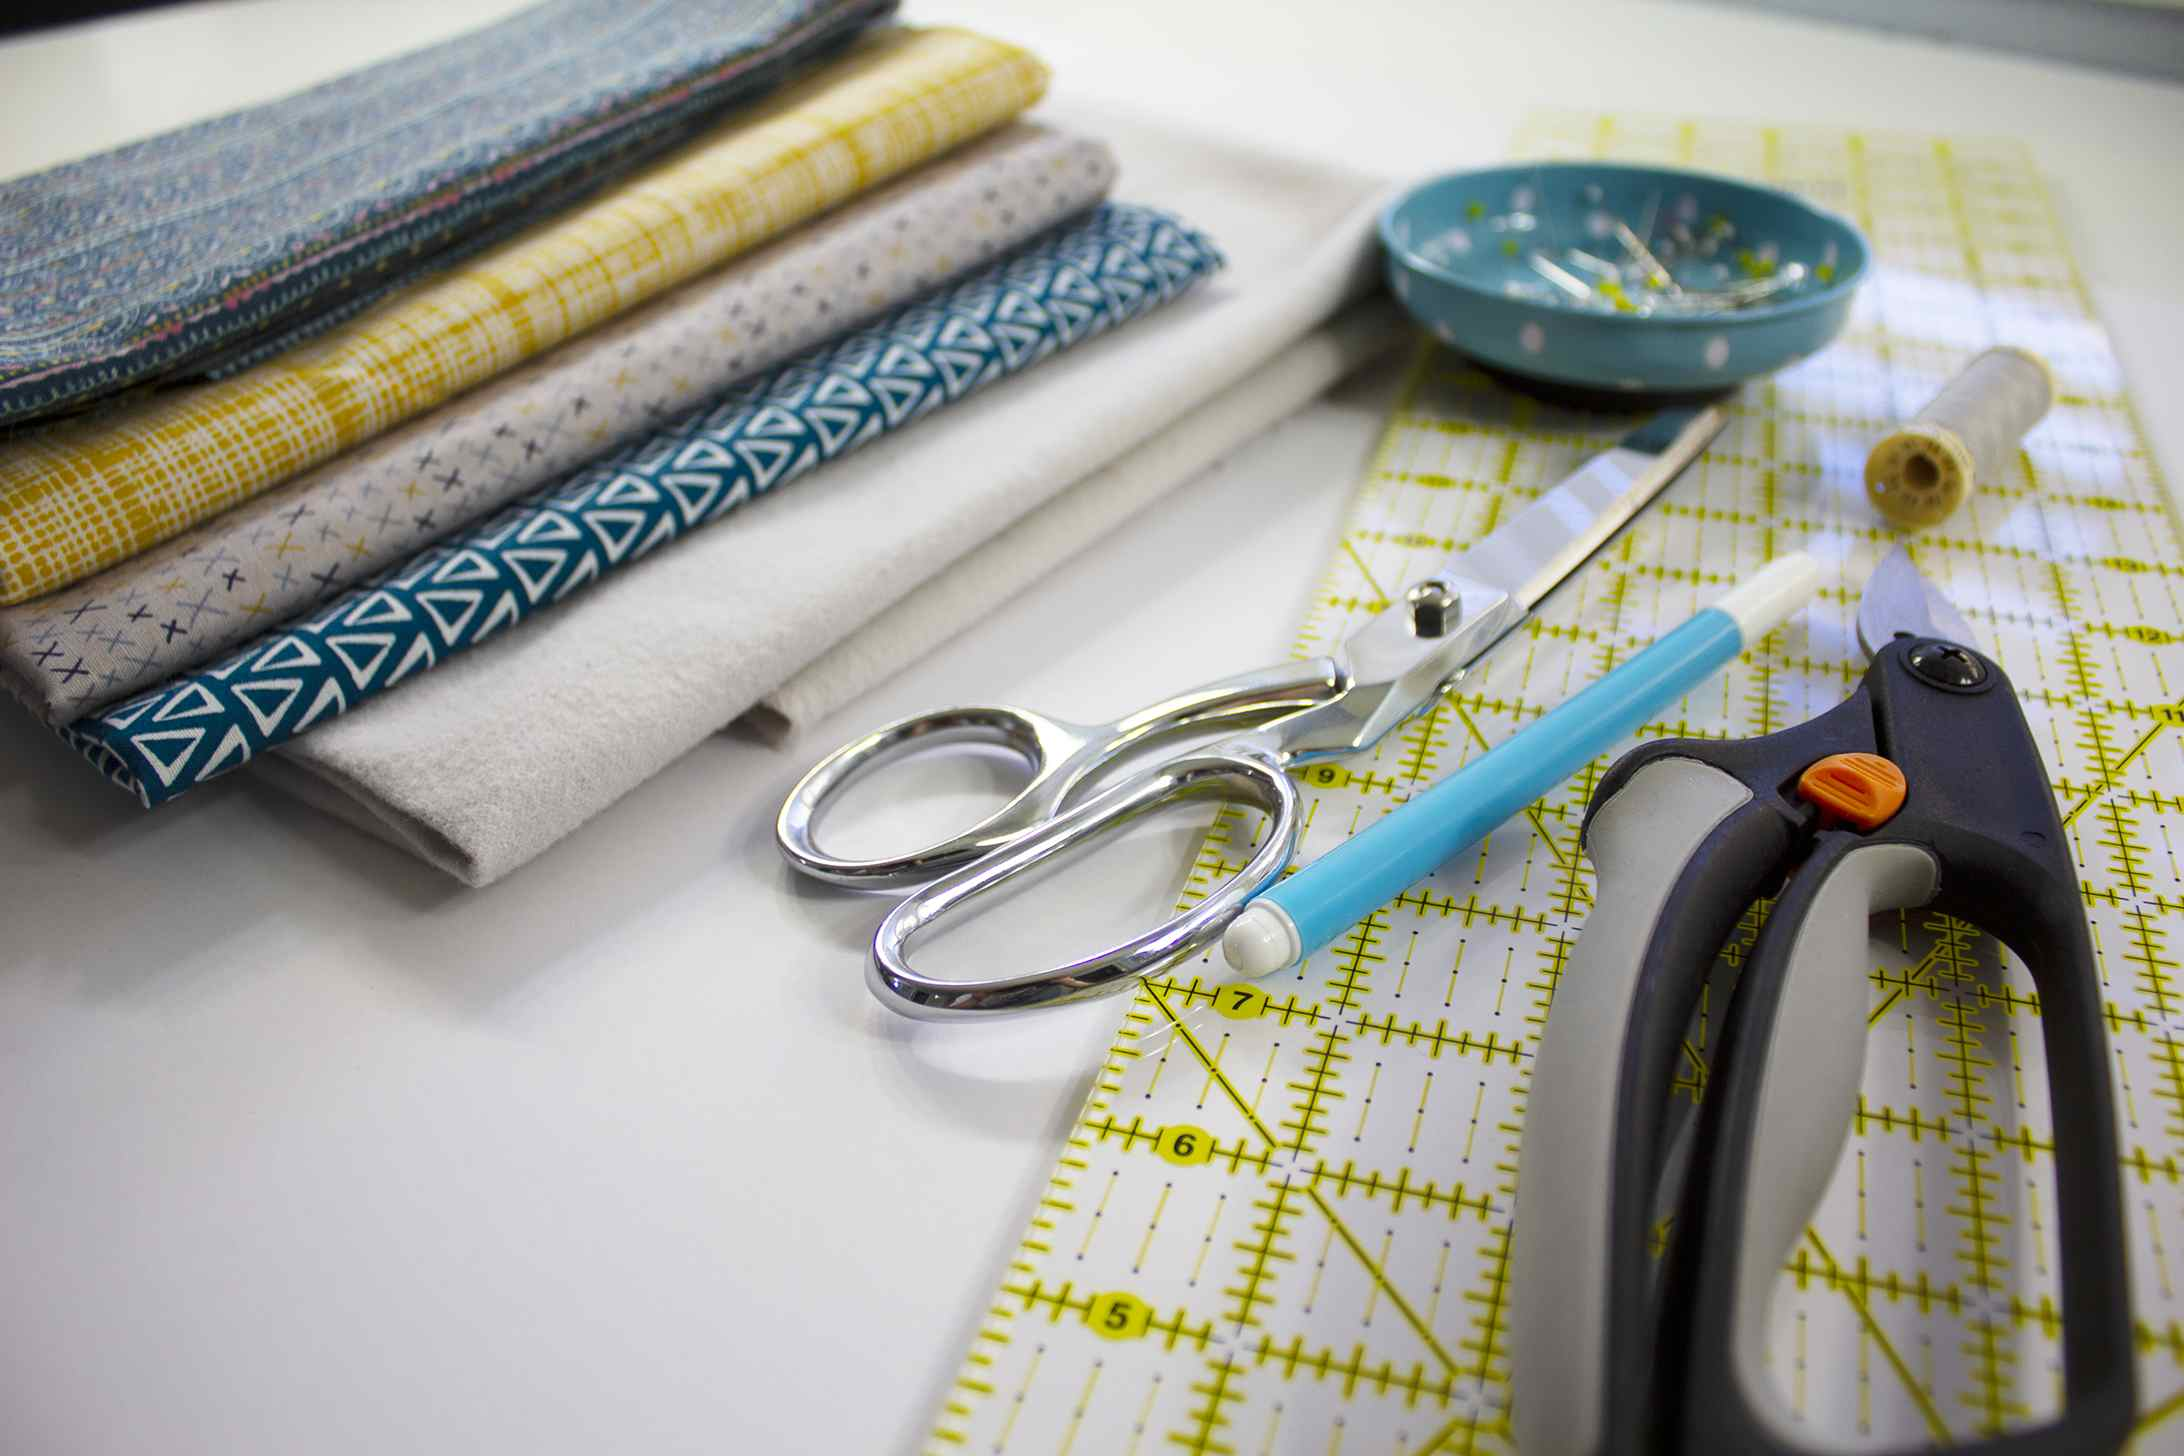 Fabric, pins, scissors, and other sewing notions